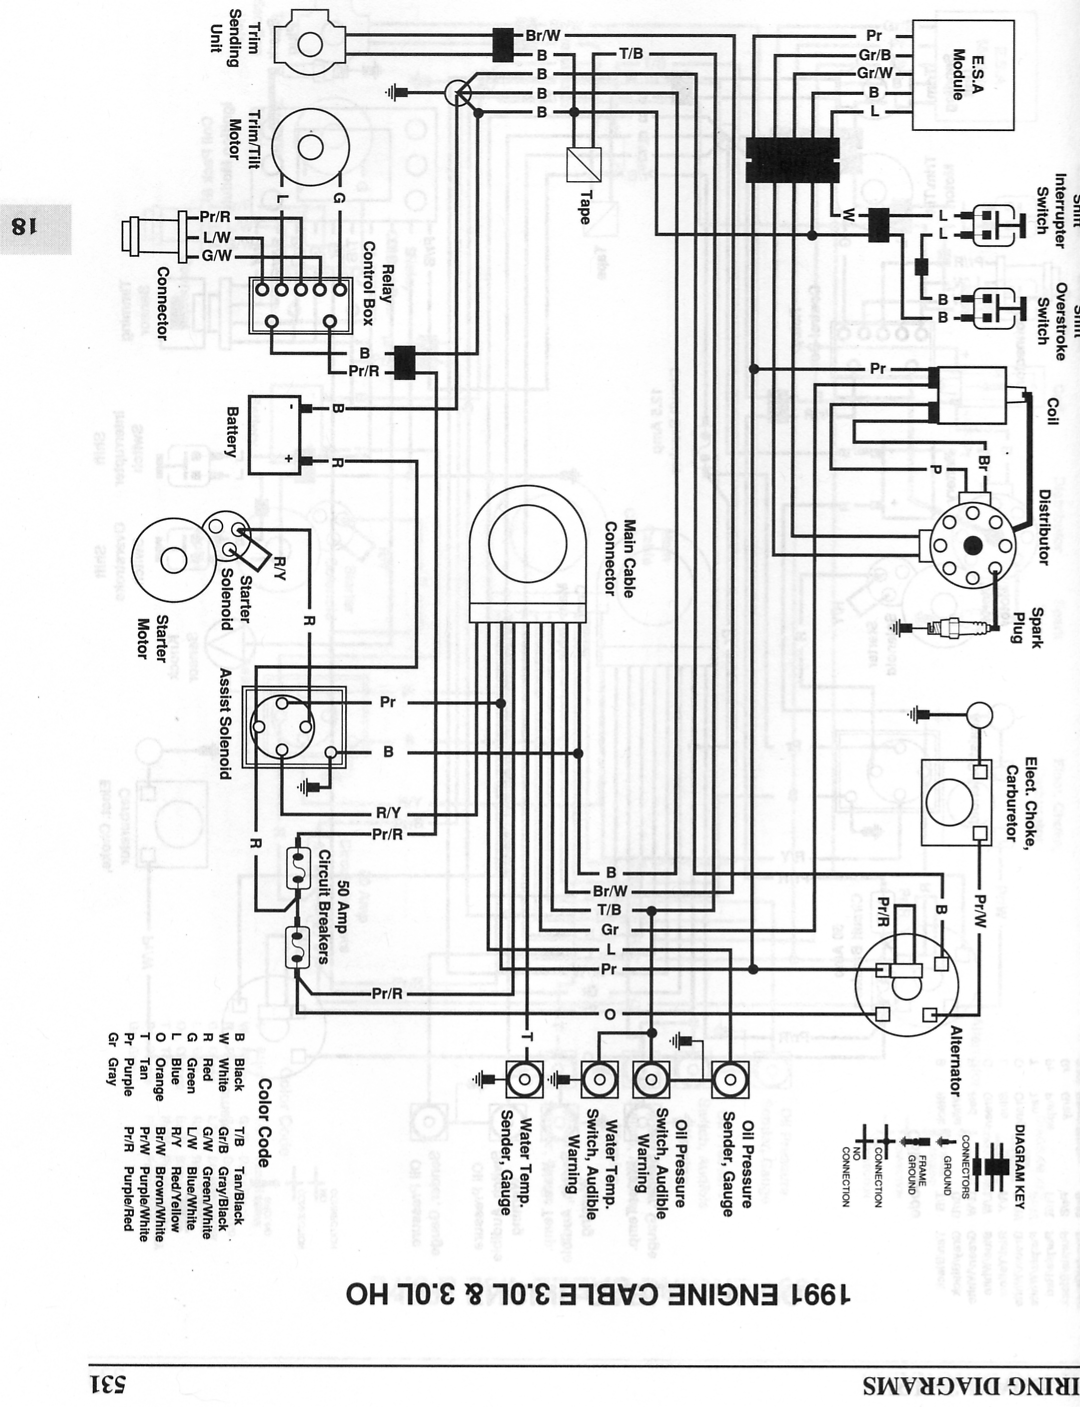 I have a 1991 craft with a 3.0 omc co engine and I just ... Omc Wiring Diagram L on